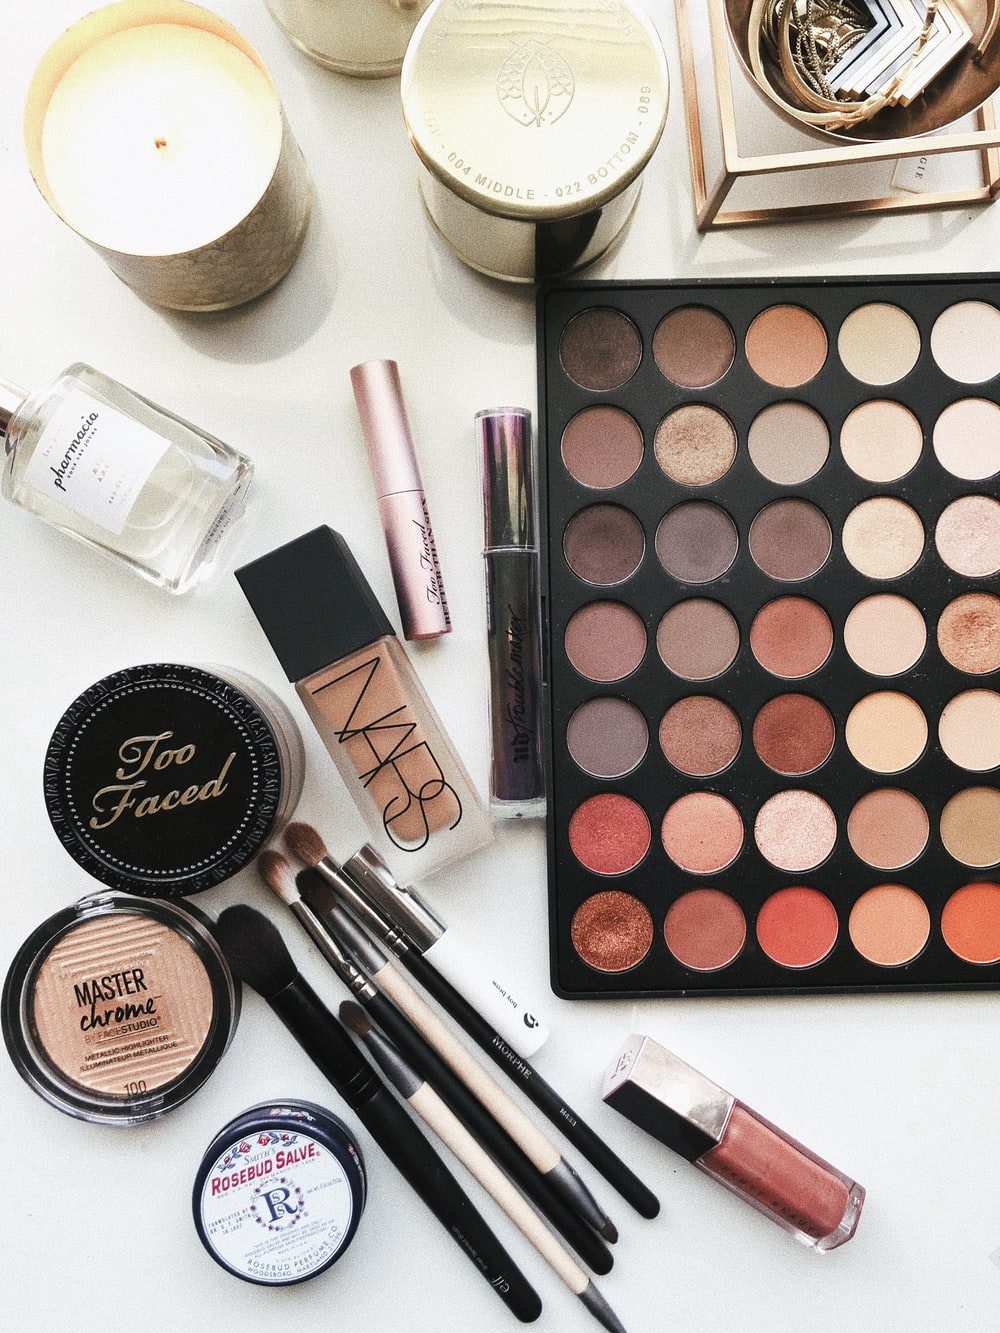 Senate bill would ban toxic 'forever chemicals' in makeup, which new study found are often unlabeled